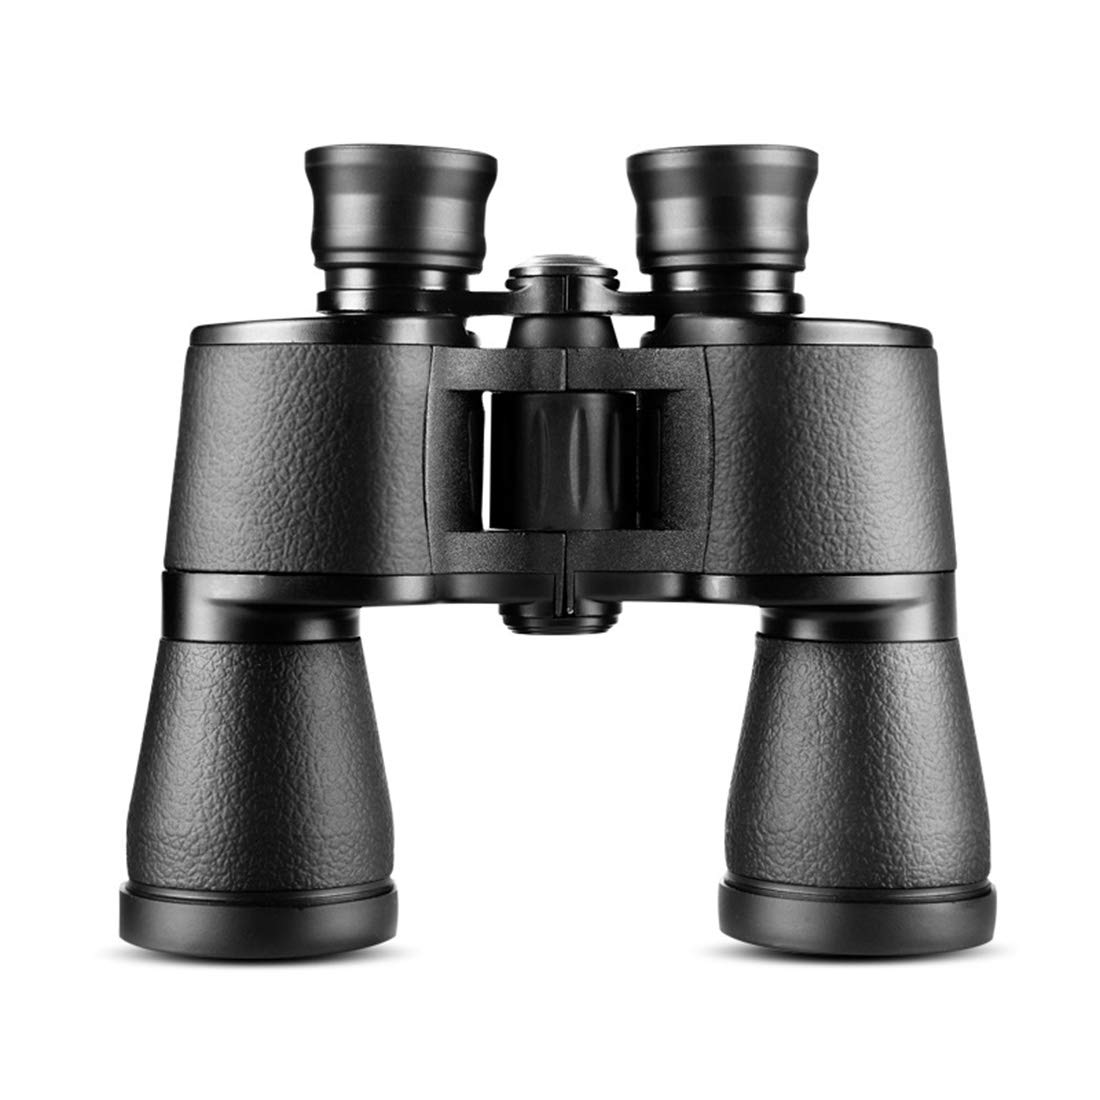 LNLW Telescope High Power 20X50 HD Low Light Level Night Vision Viewing Concert Telescope for Outdoor Use (Color : Black)